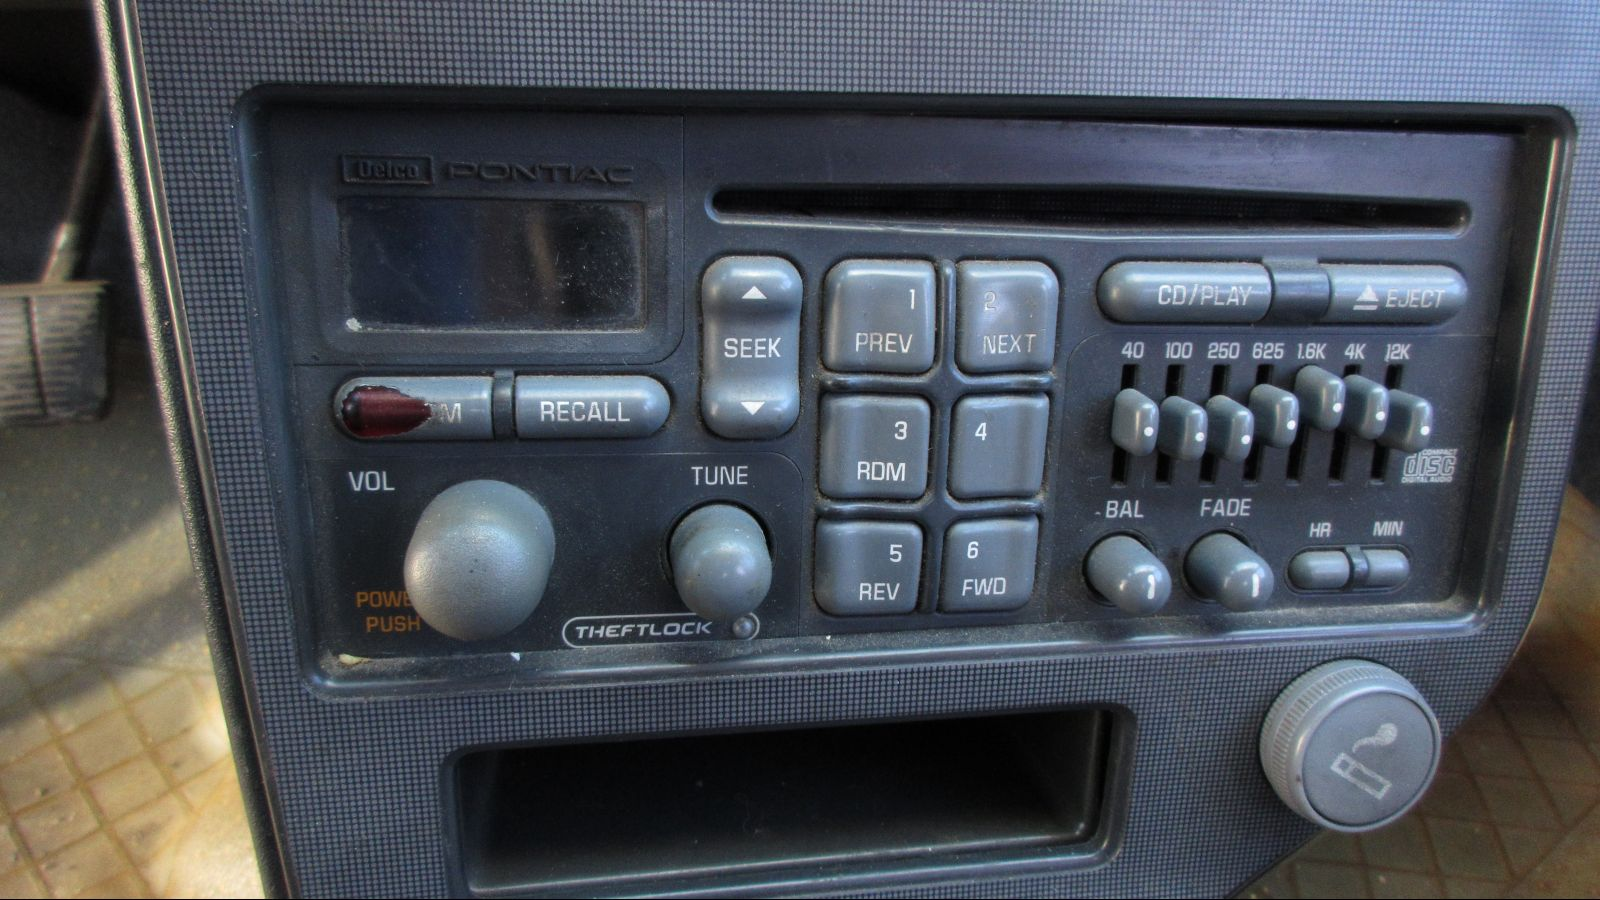 This 1991 Pontiac Grand Am With A 5 Speed Manual Is Junkyard Gem Engine Technology Here We See An Interesting Mix Of 1980s And 1990s Car Radio Cd Players In Cars Were Still Costly Luxury Items Seldom Seen Affordable